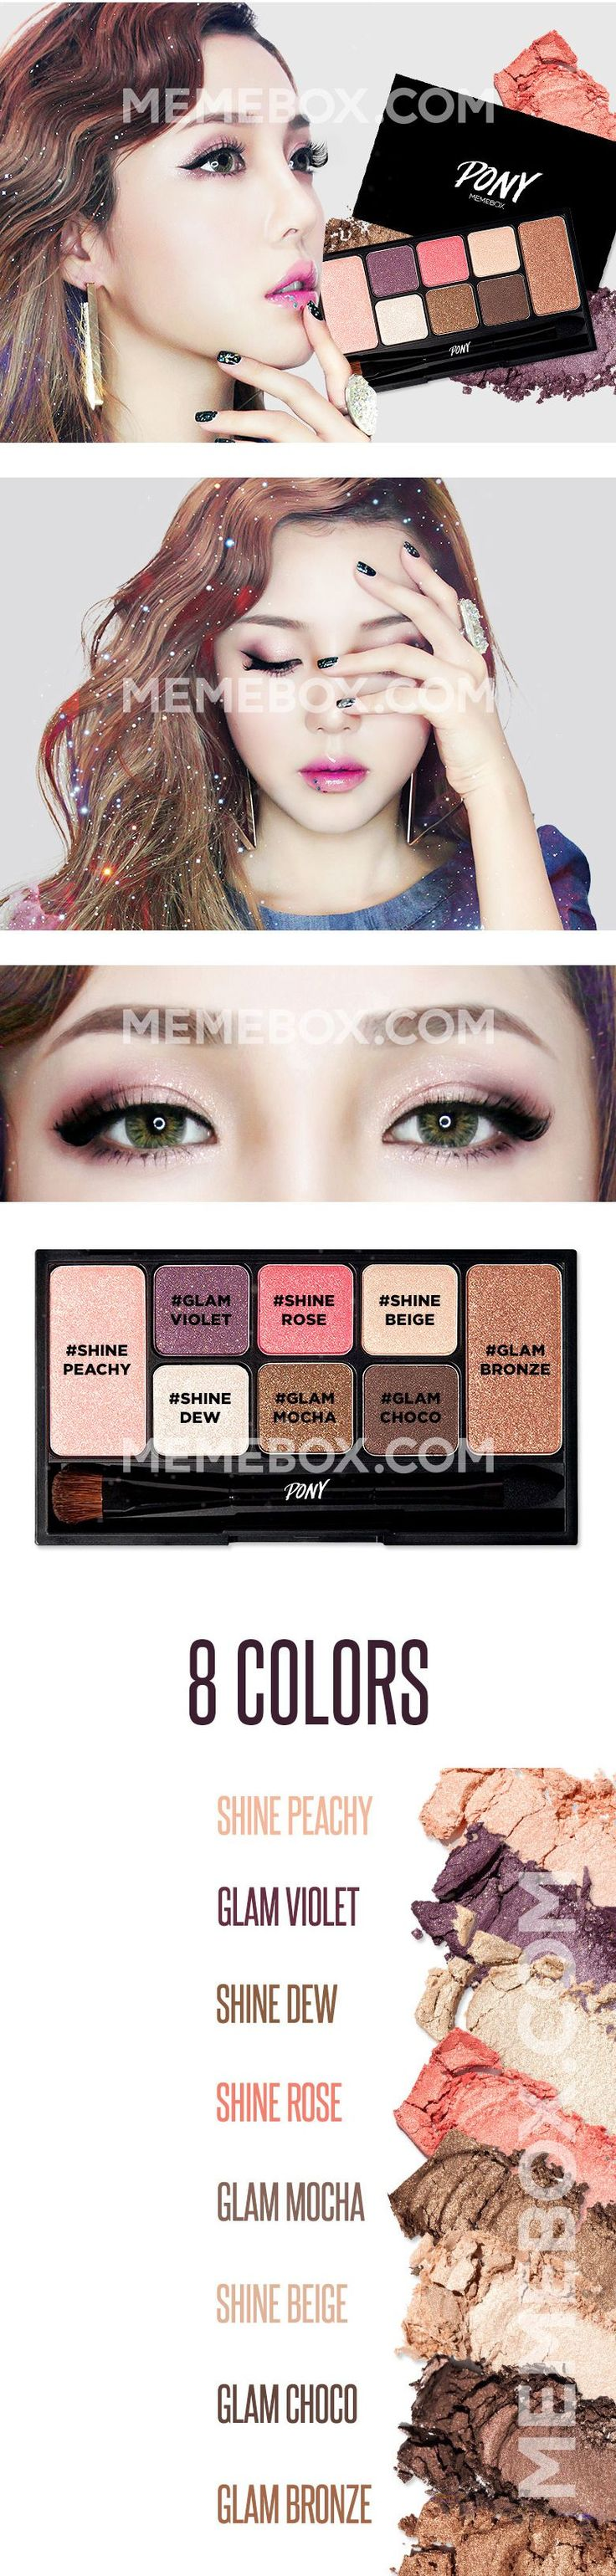 pony x memebox shine easy glam eyeshadow palette 2